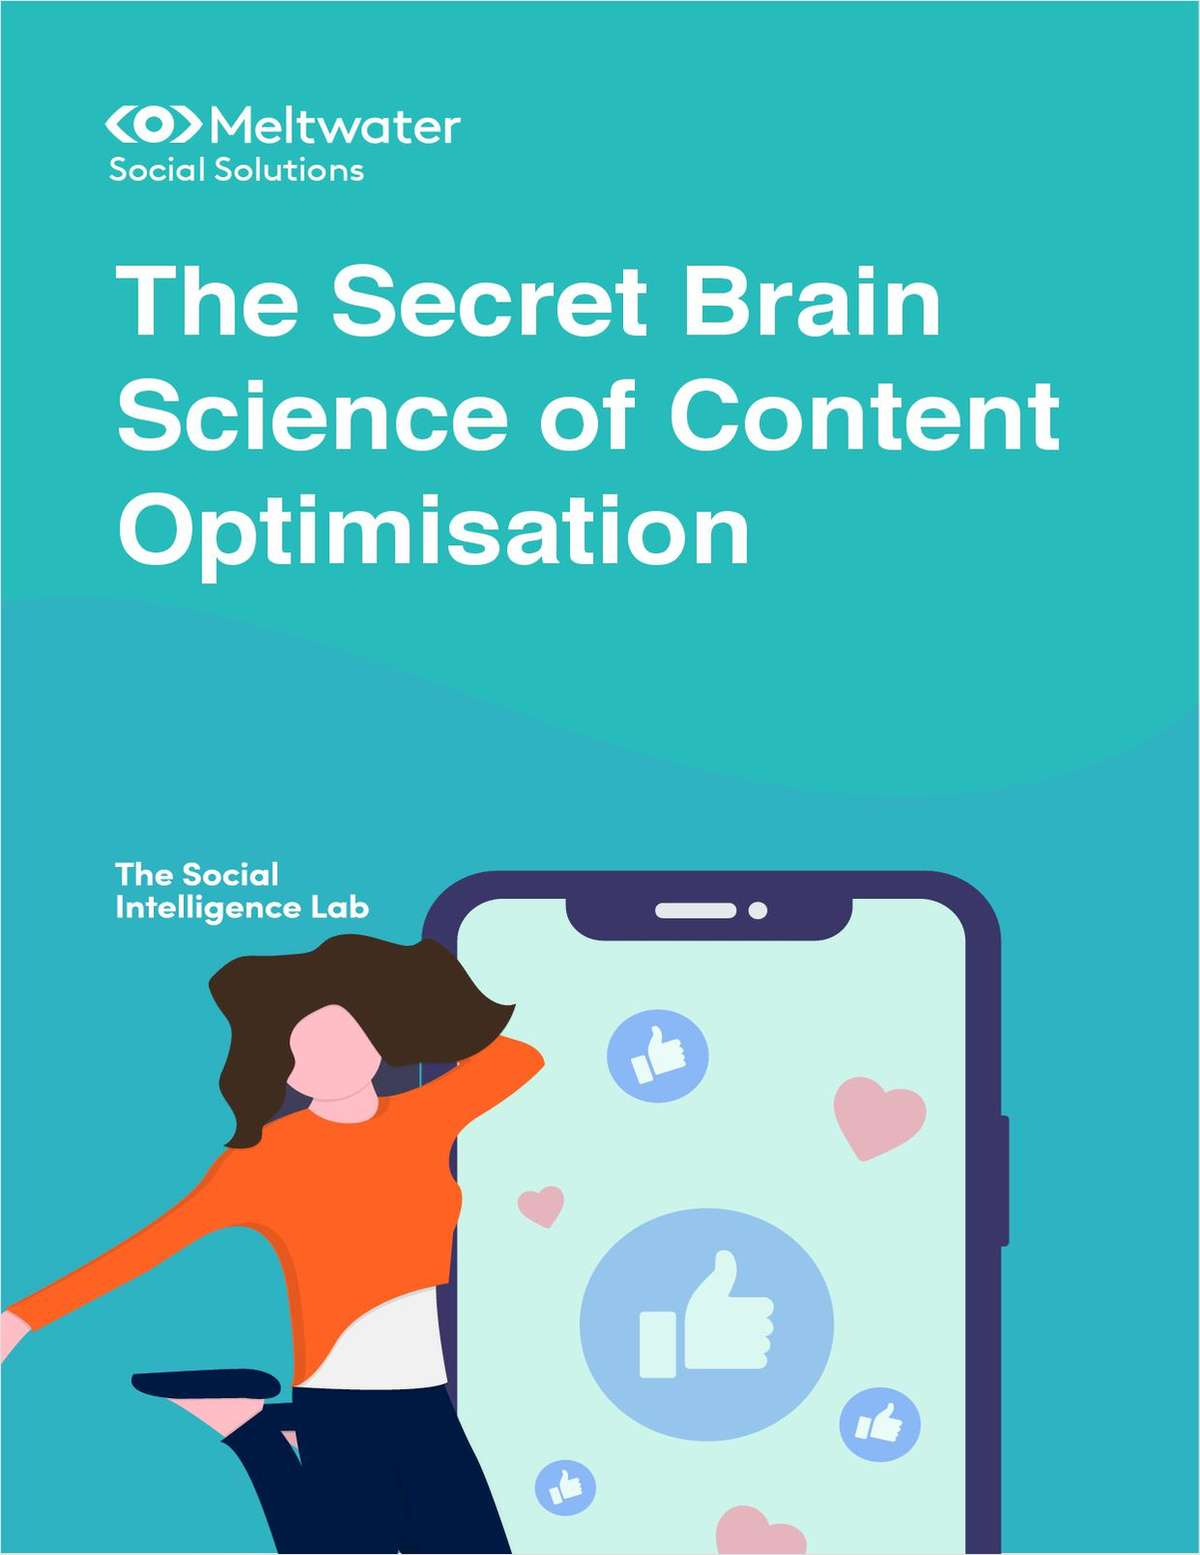 The Secret Brain Science of Content Optimization